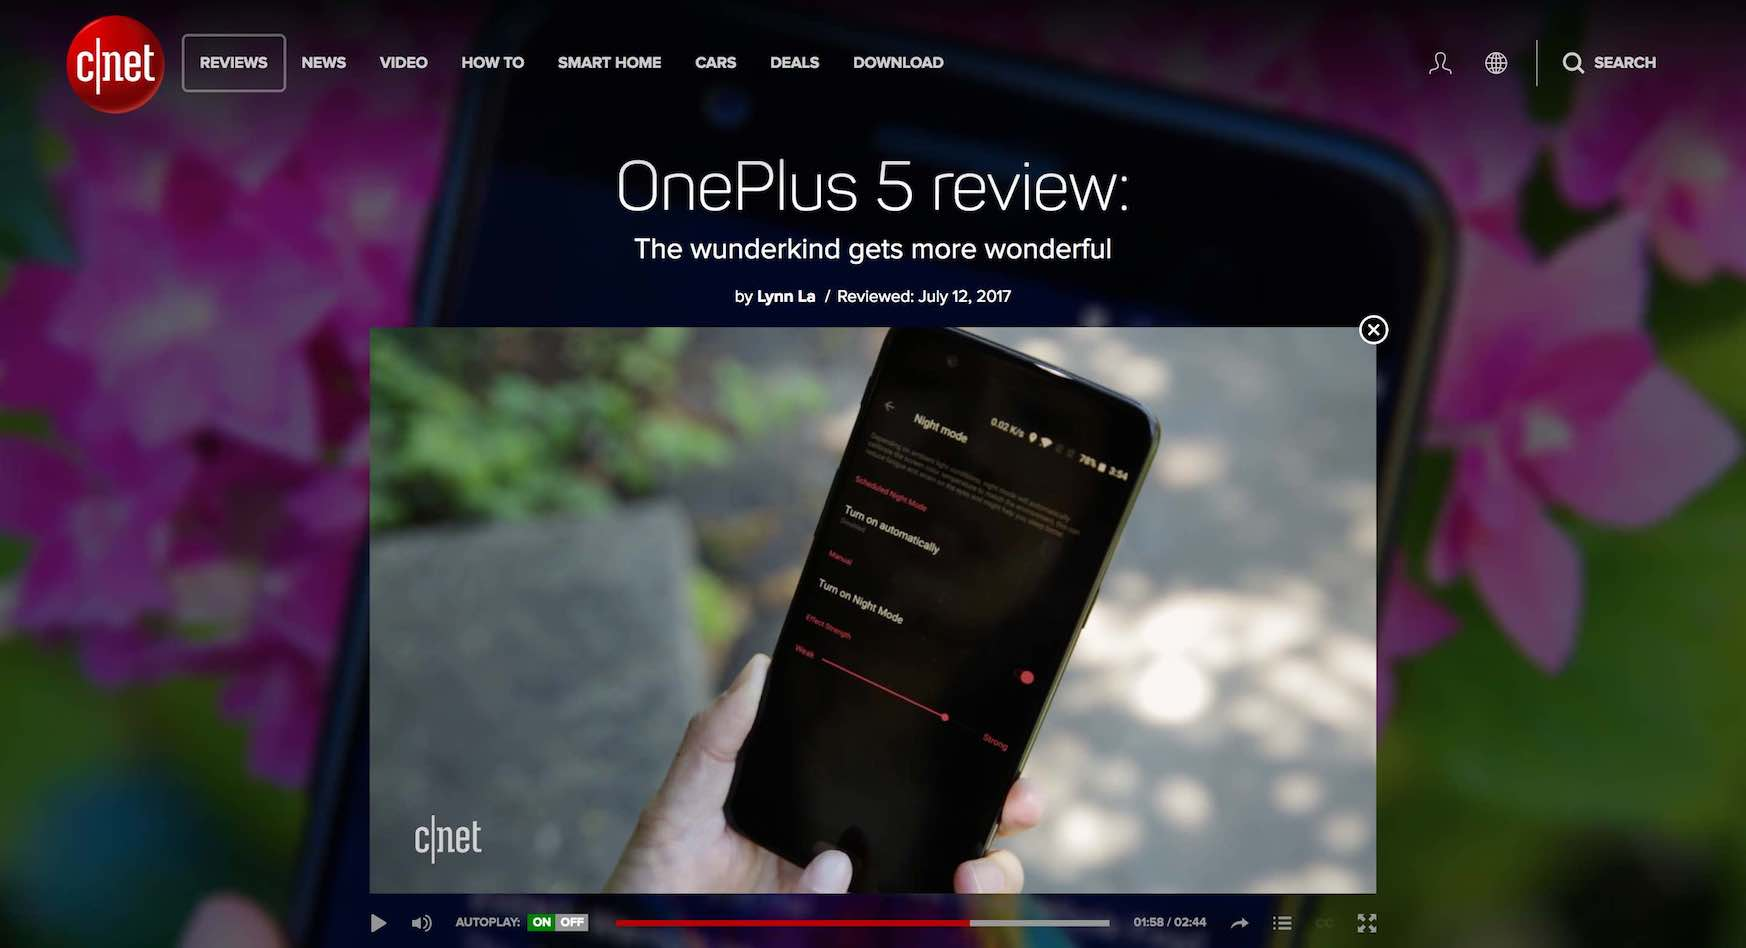 Cnet OnePlus 5 review